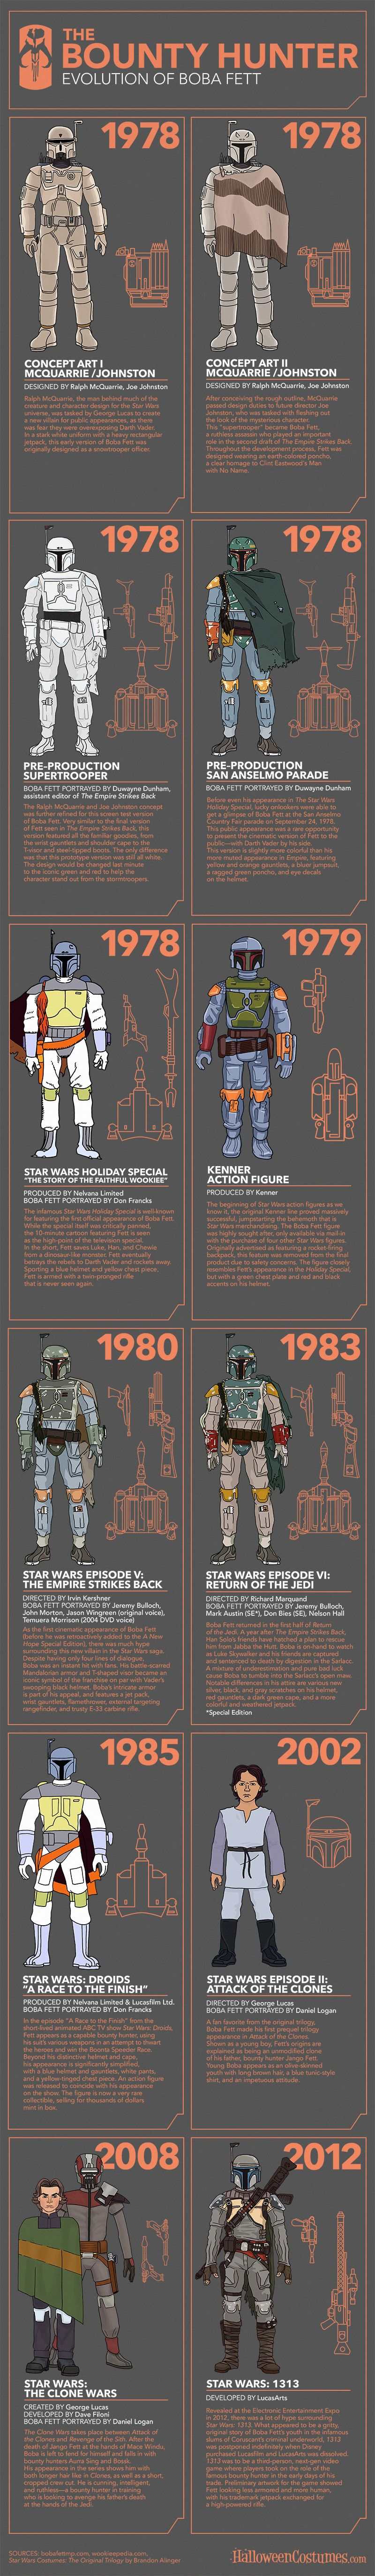 The Bounty Hunter Evolution of Boba Fett